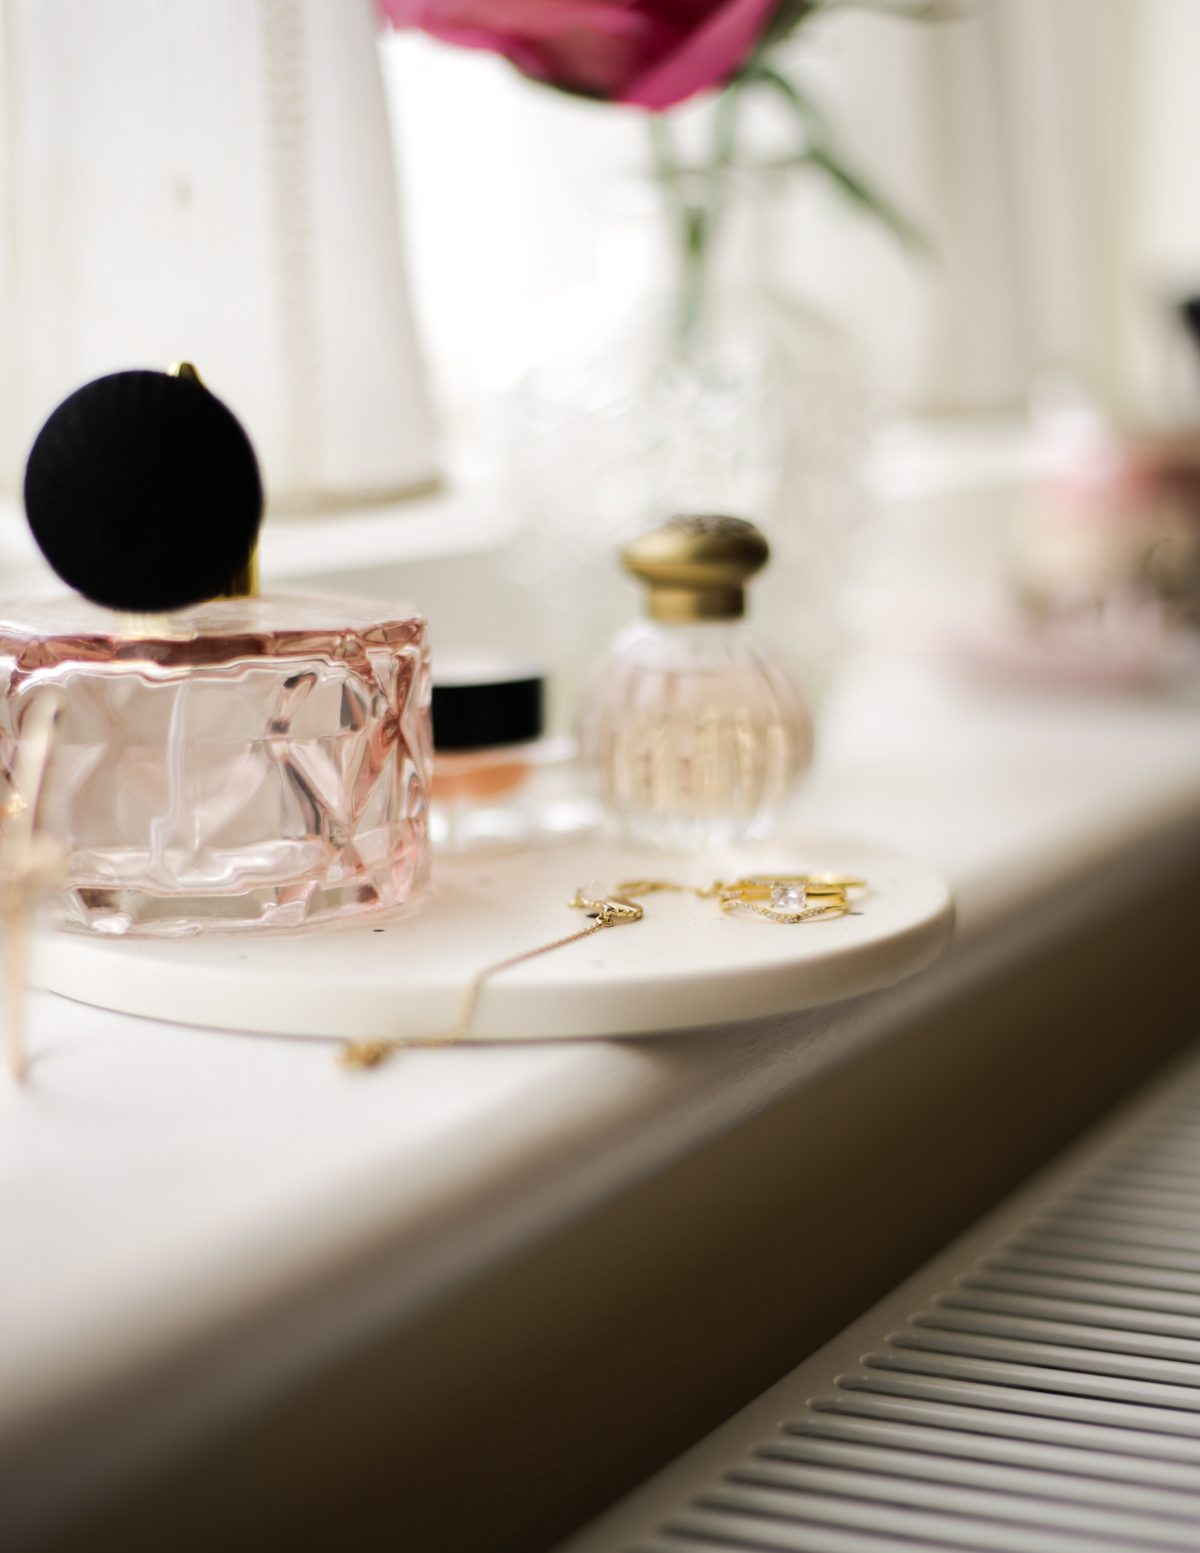 Some Fashion & Beauty Finds from &Other Stories- feat &Other Stories rings and bracelet styled in window sill with vase